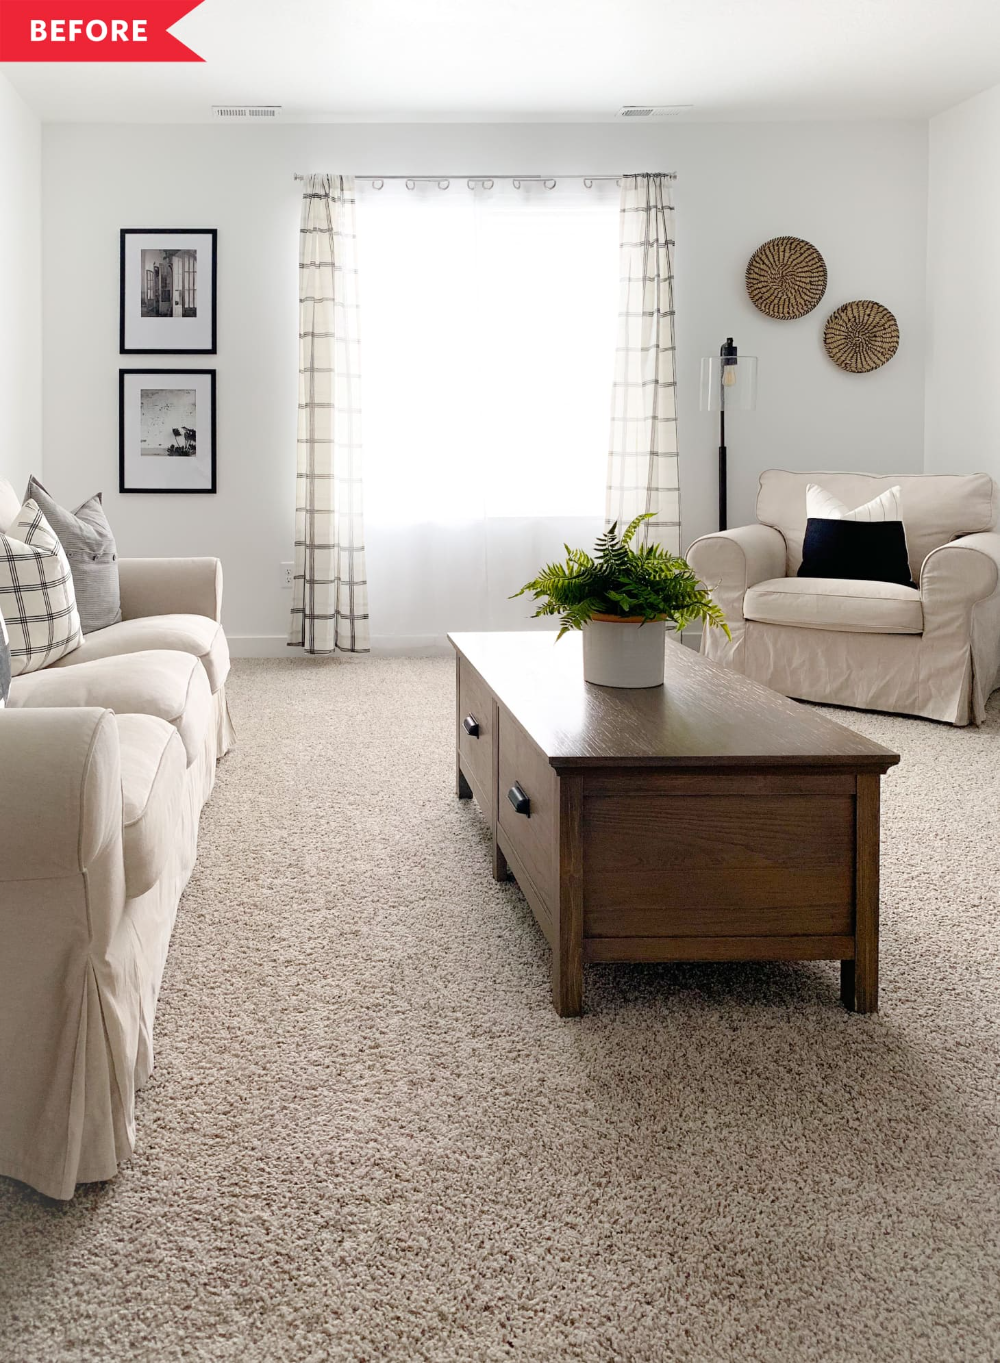 Before And After This 350 Living Room Refresh Shows The Power Of Small Tweaks Beige Carpet Living Room Navy And White Living Room Beige Living Rooms